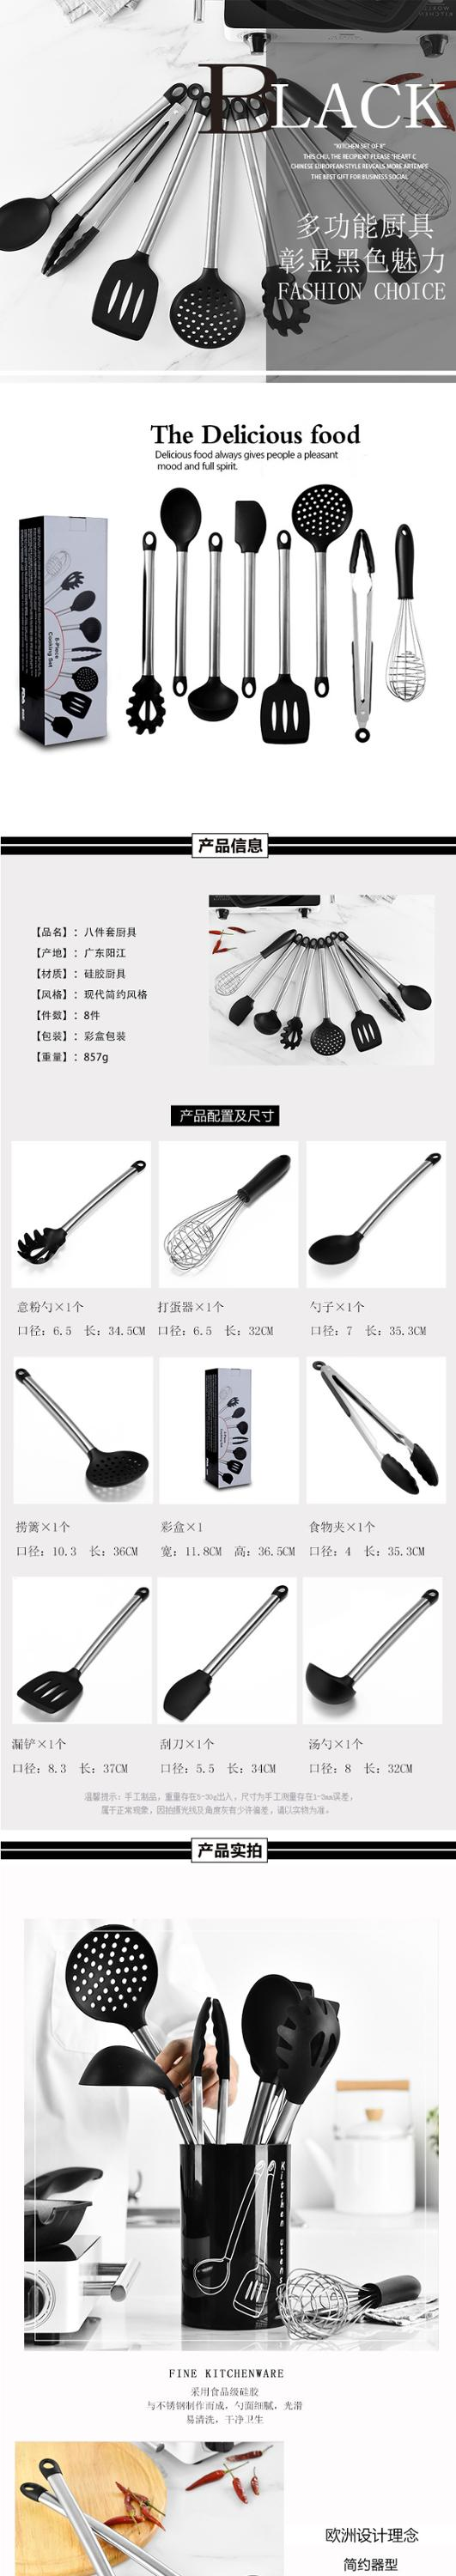 kitchen tools 6pcs stainless steel kitchenware set / cooking utensil